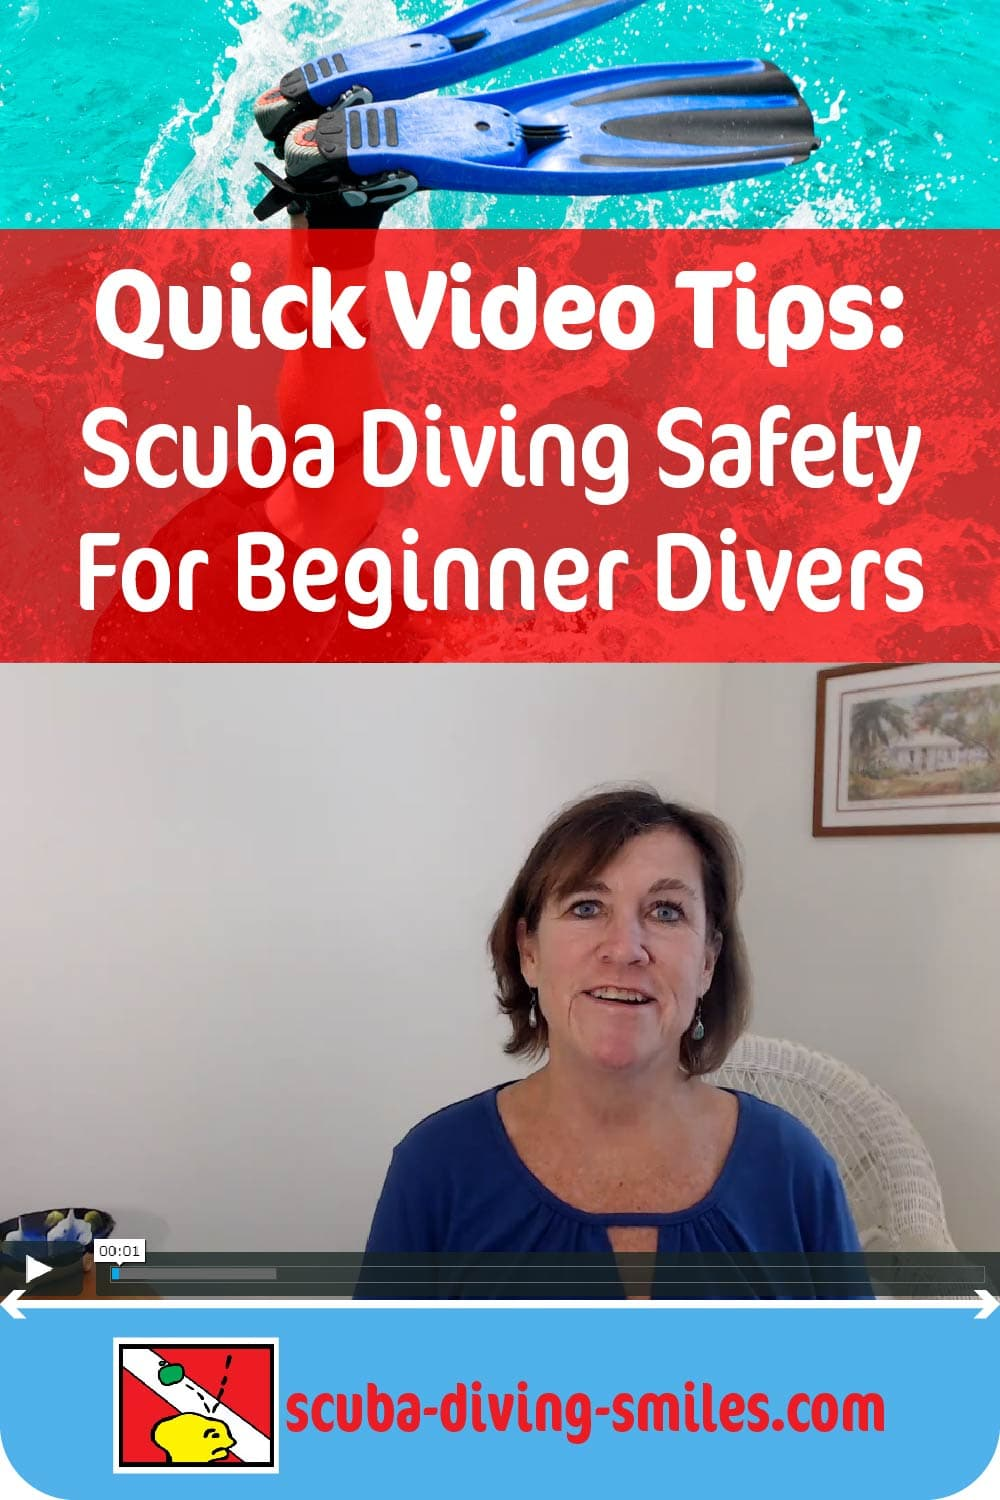 Quick video of scuba diving safety tips for new scuba divers.